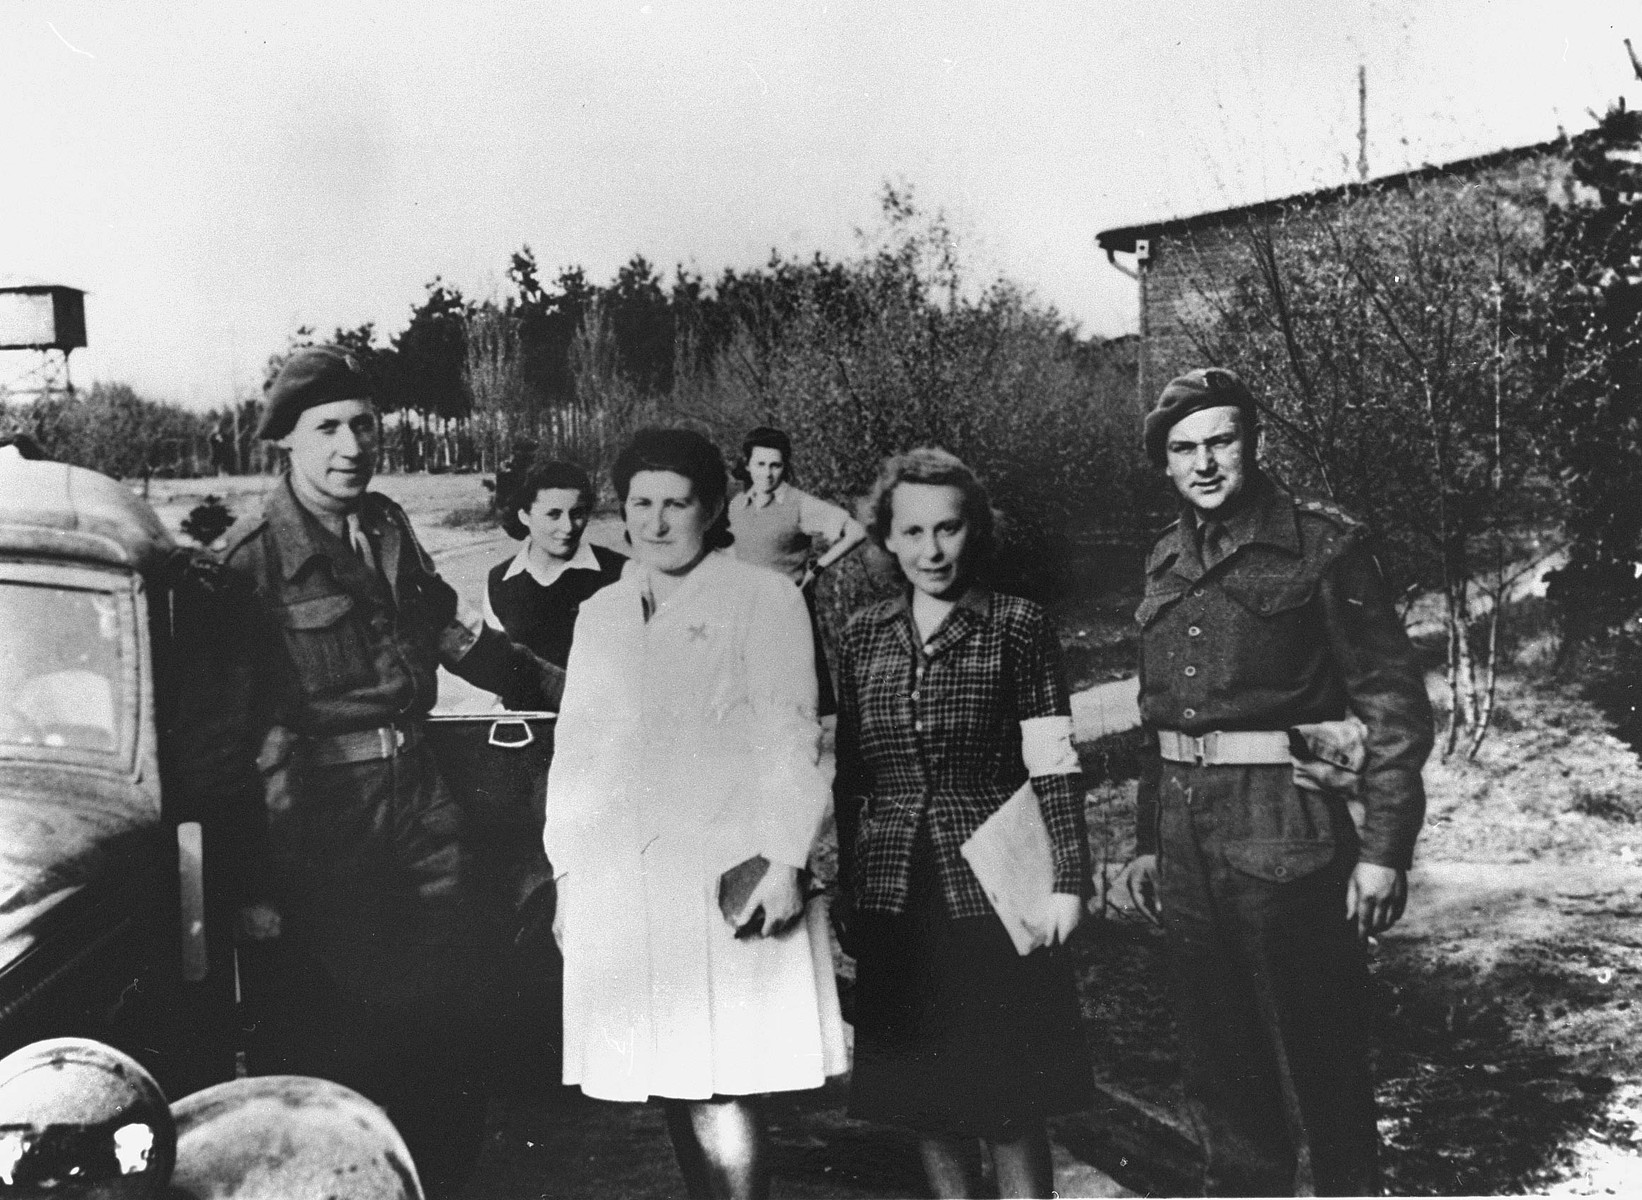 Survivors pose with British soldiers soon after the liberation of Bergen-Belsen.  Among those pictured is Hadassah Bimko (second from the left), Captain Winterbottom, and Dr. Ruth Gutman.